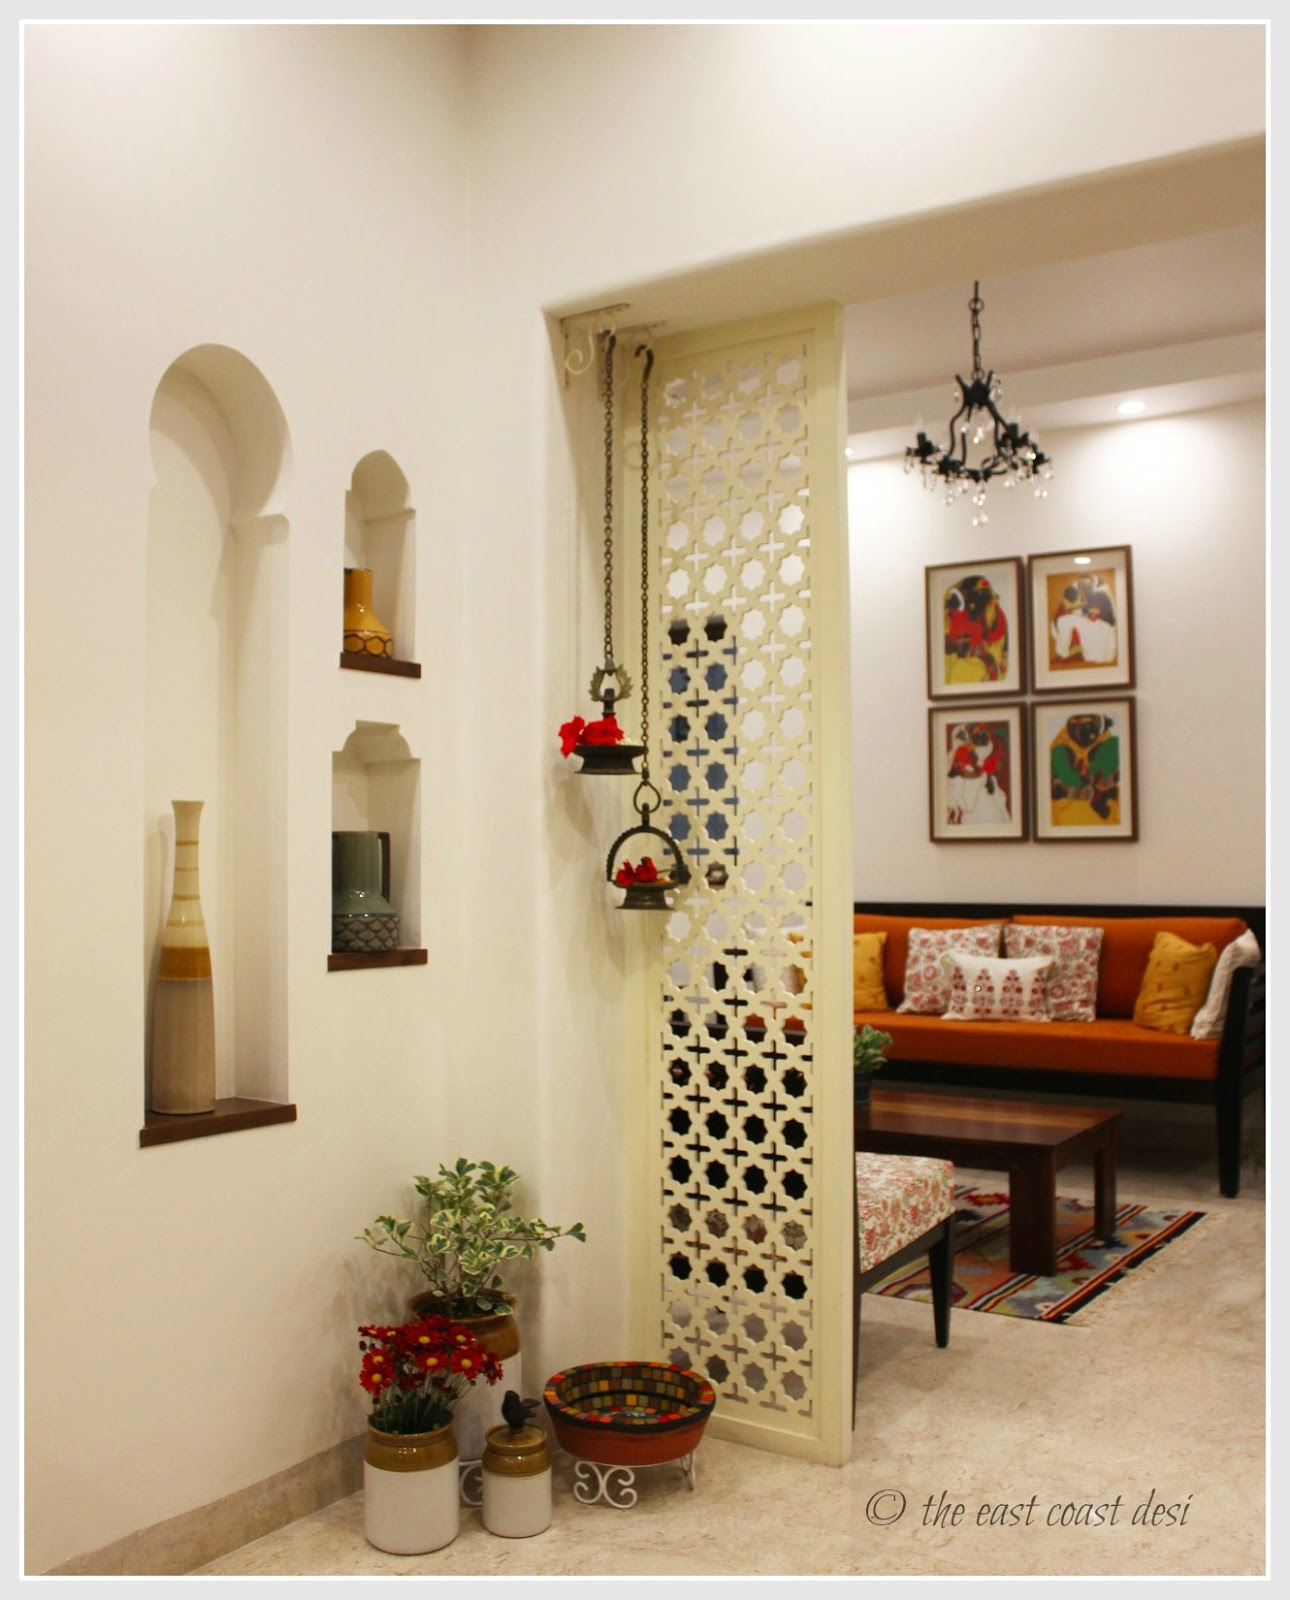 Indian Home Interior Design Tips: The East Coast Desi: Keeping It Elegantly Eclectic (Home Tour